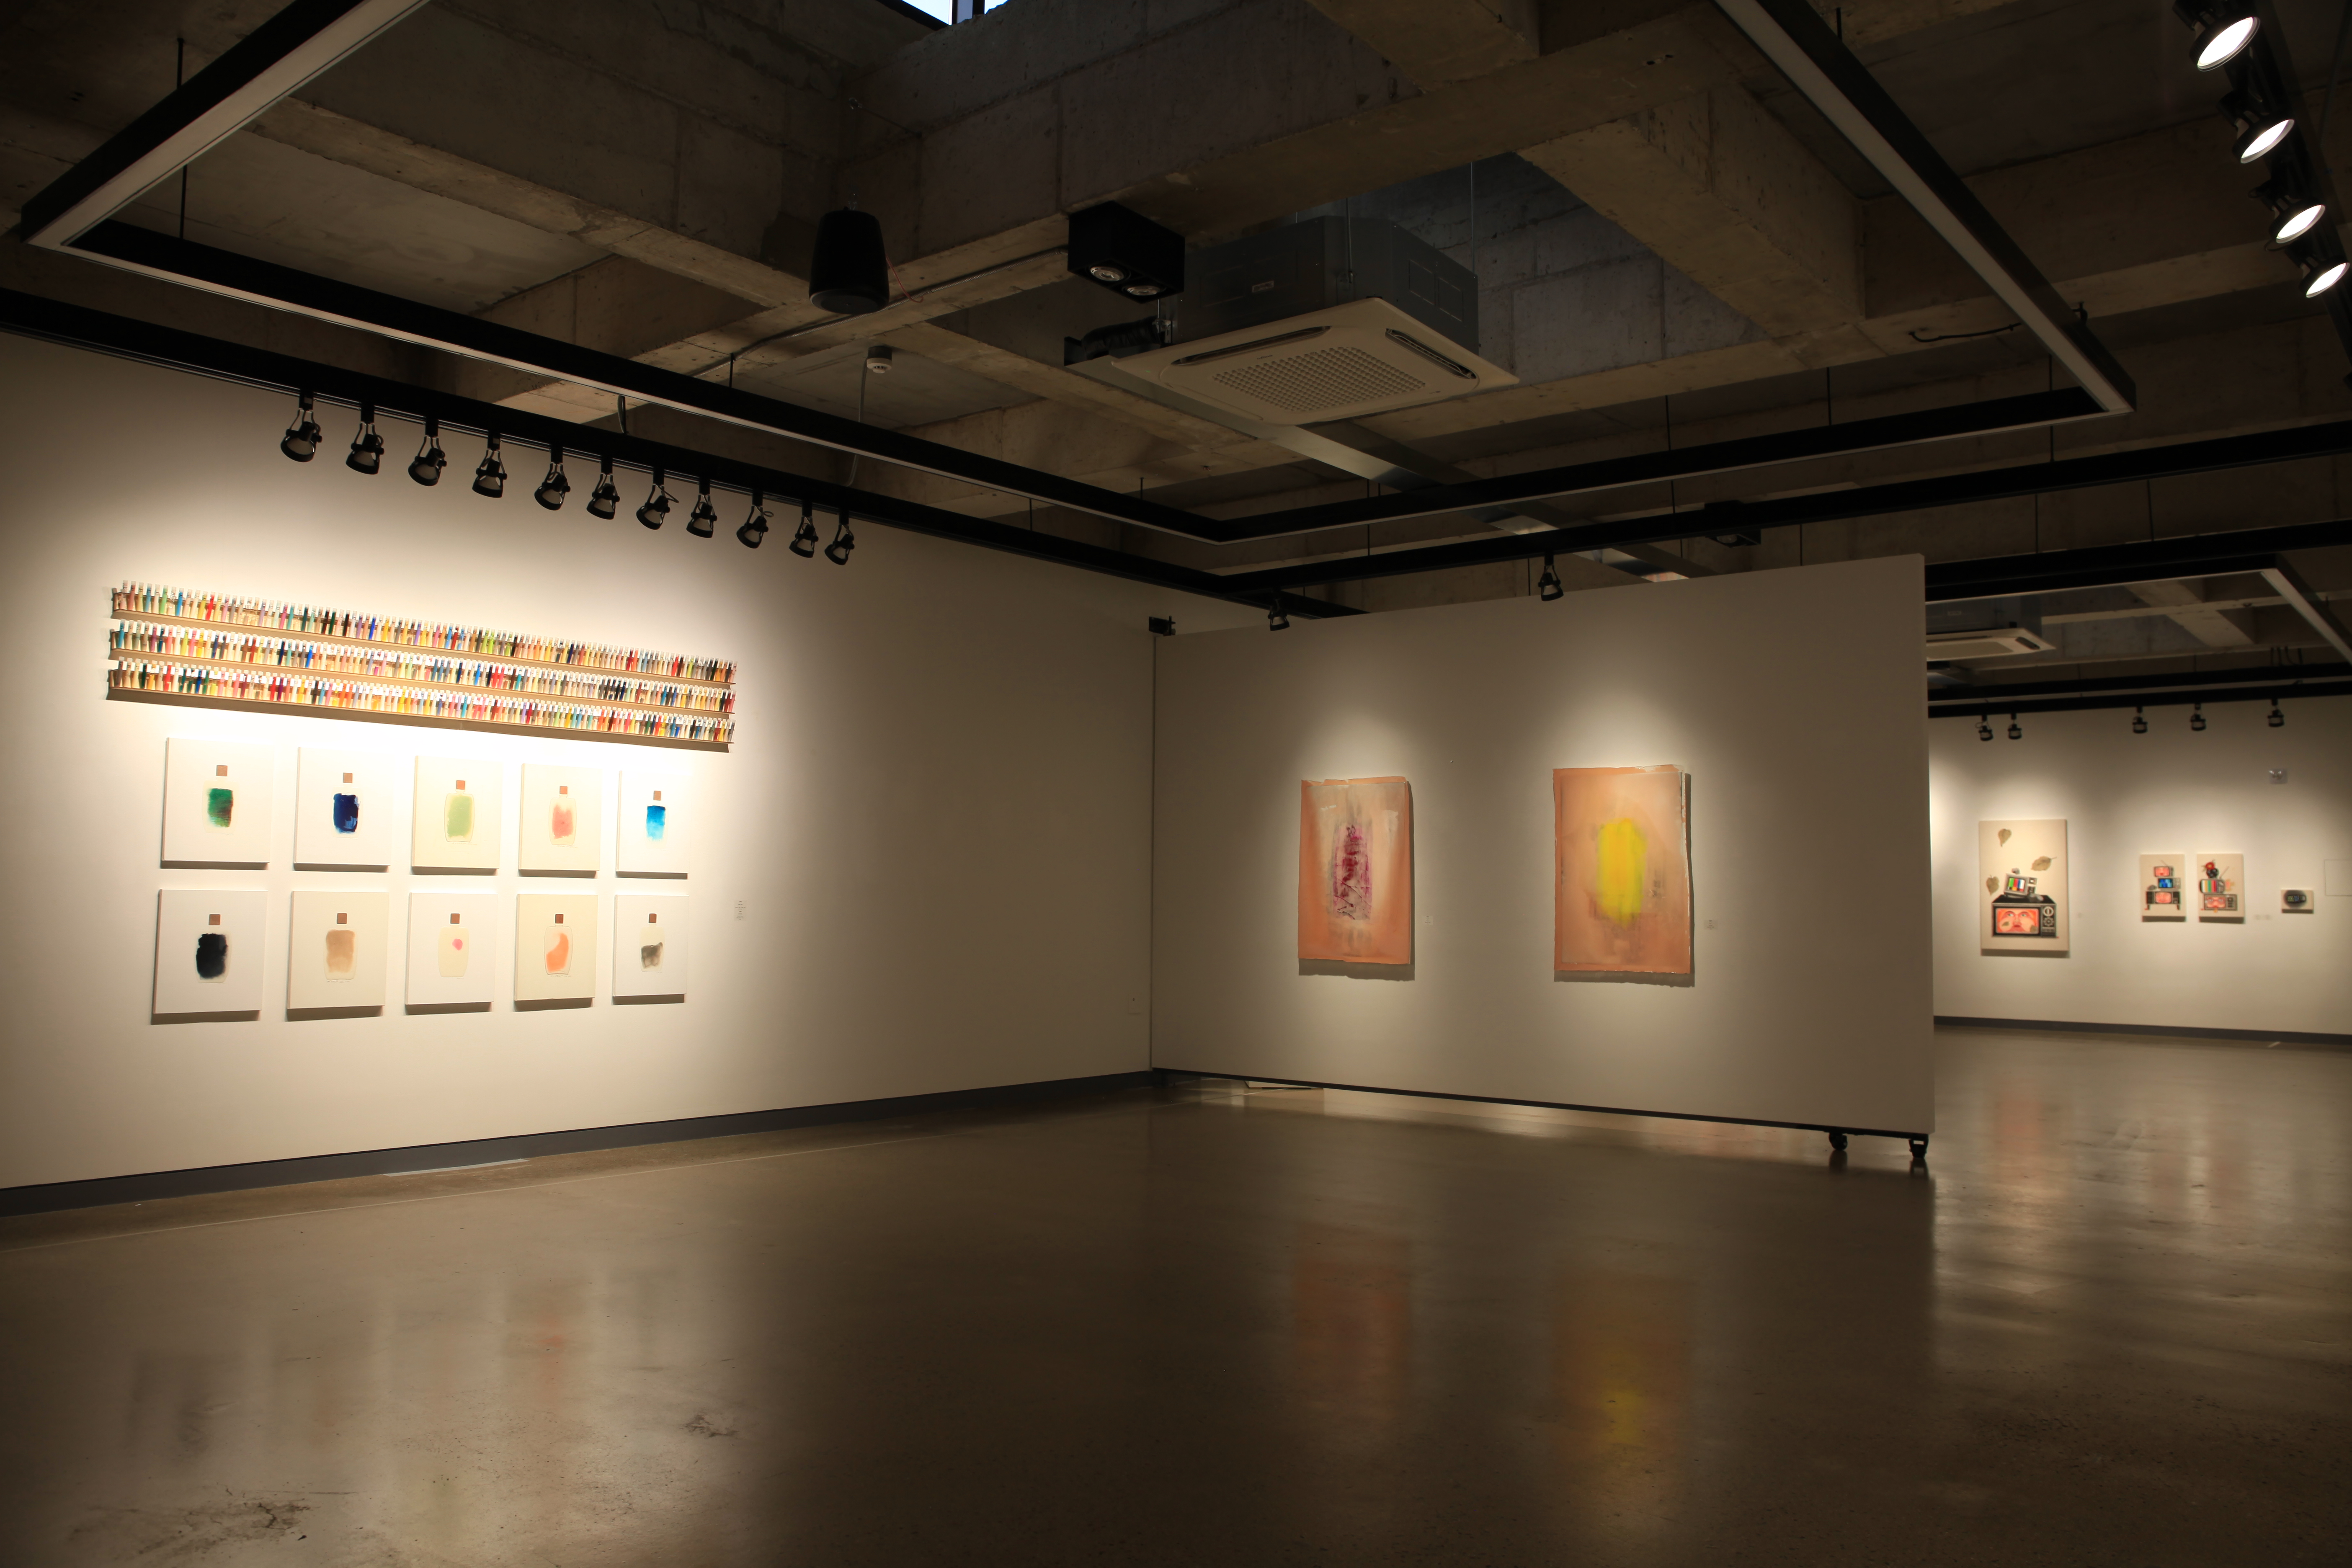 http://deyoungmuseum.co.kr/bs/se2/imgup/1598405373IMG_8621.JPG